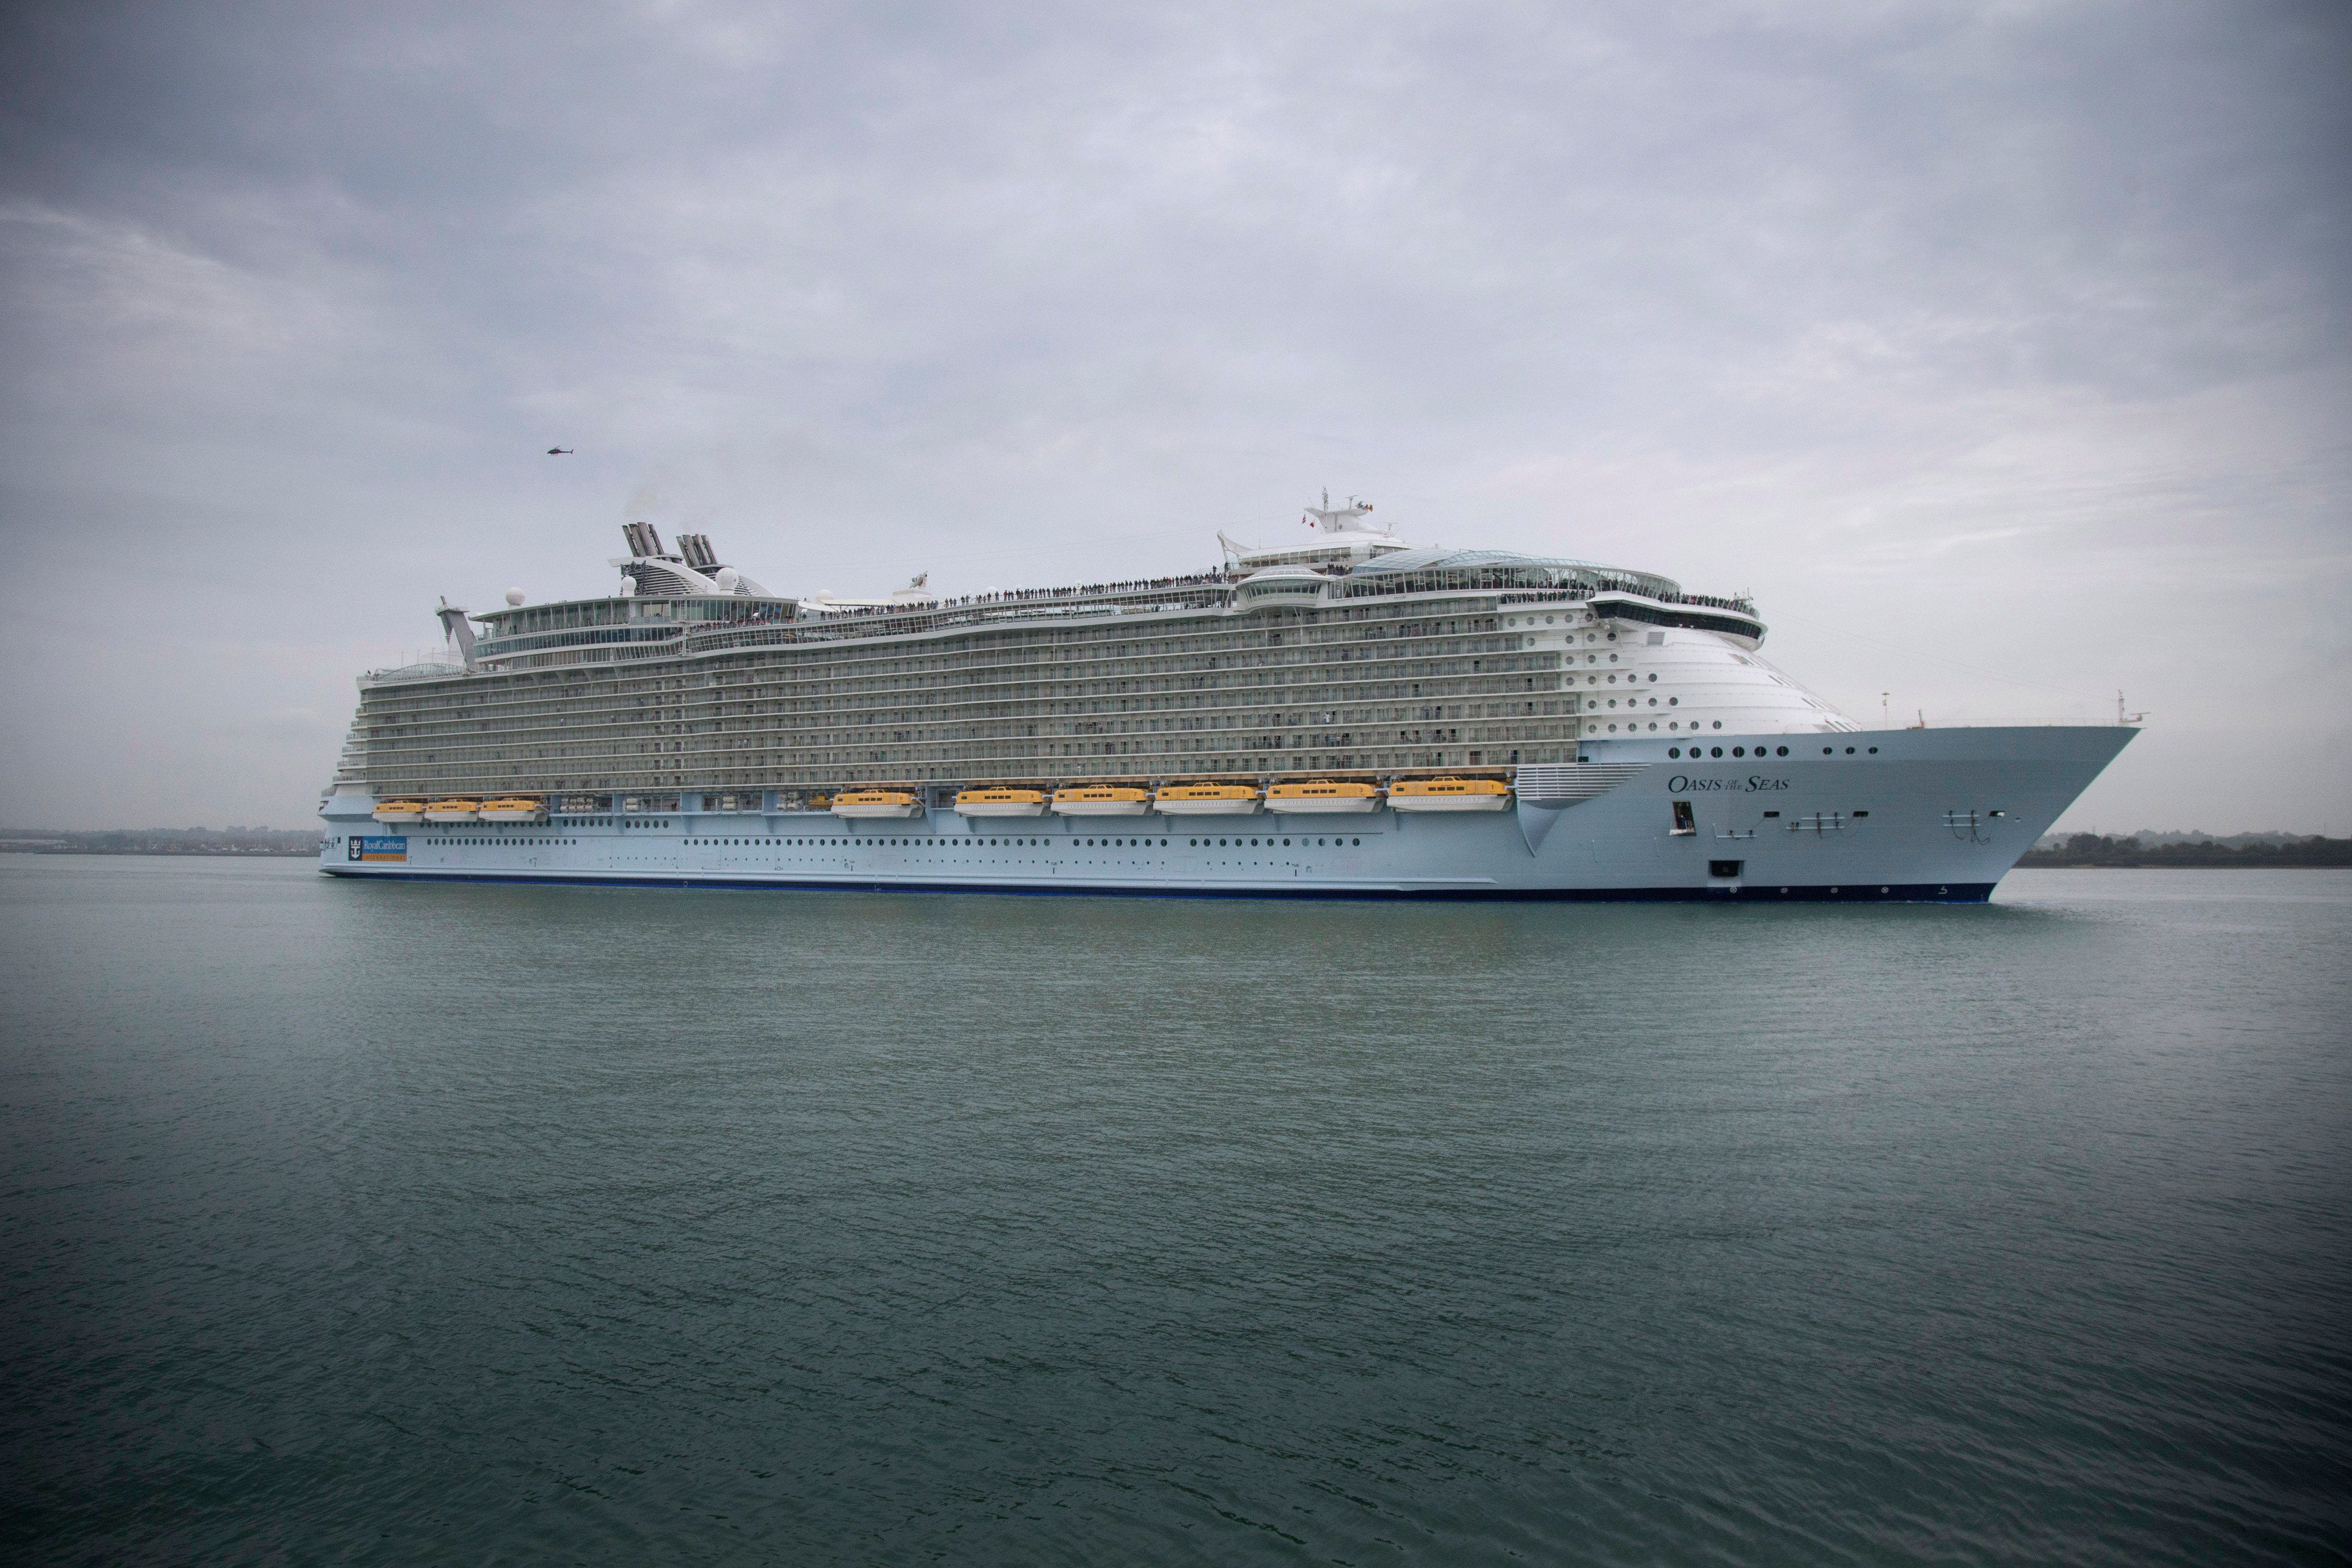 largest cruise ship 'Oasis of the Seas